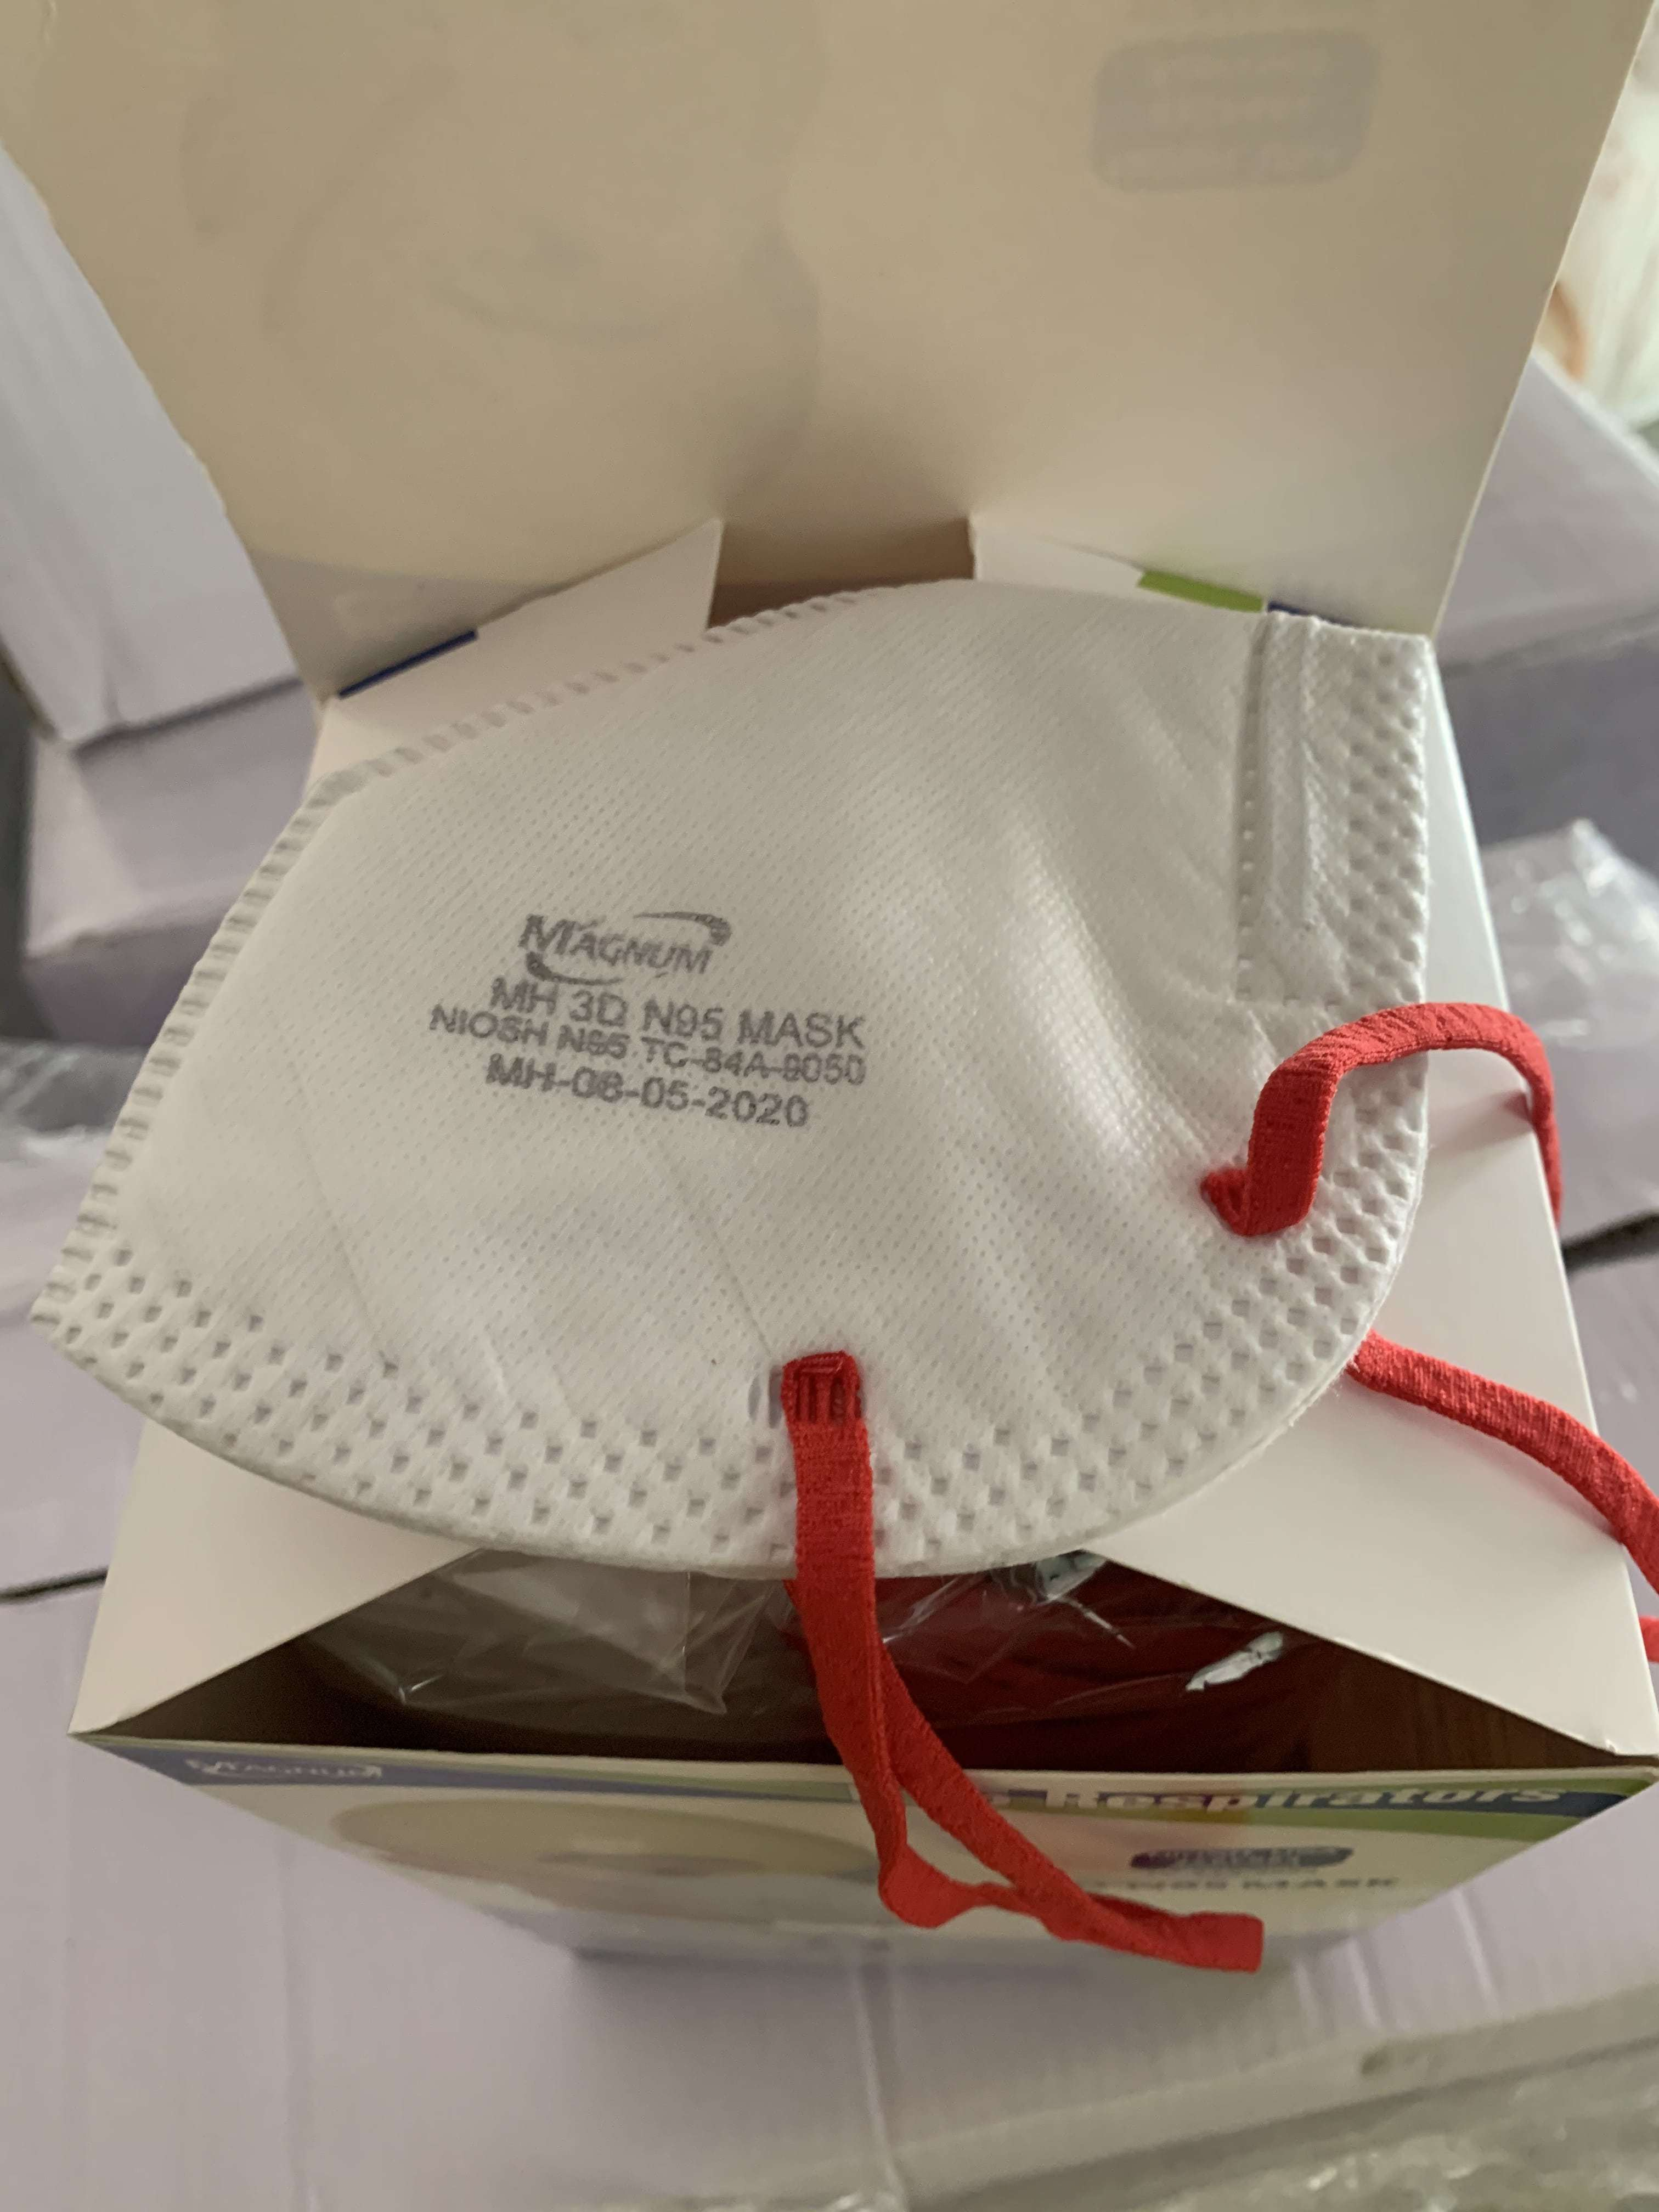 Magnum N95 Mask without Respiratory Valve